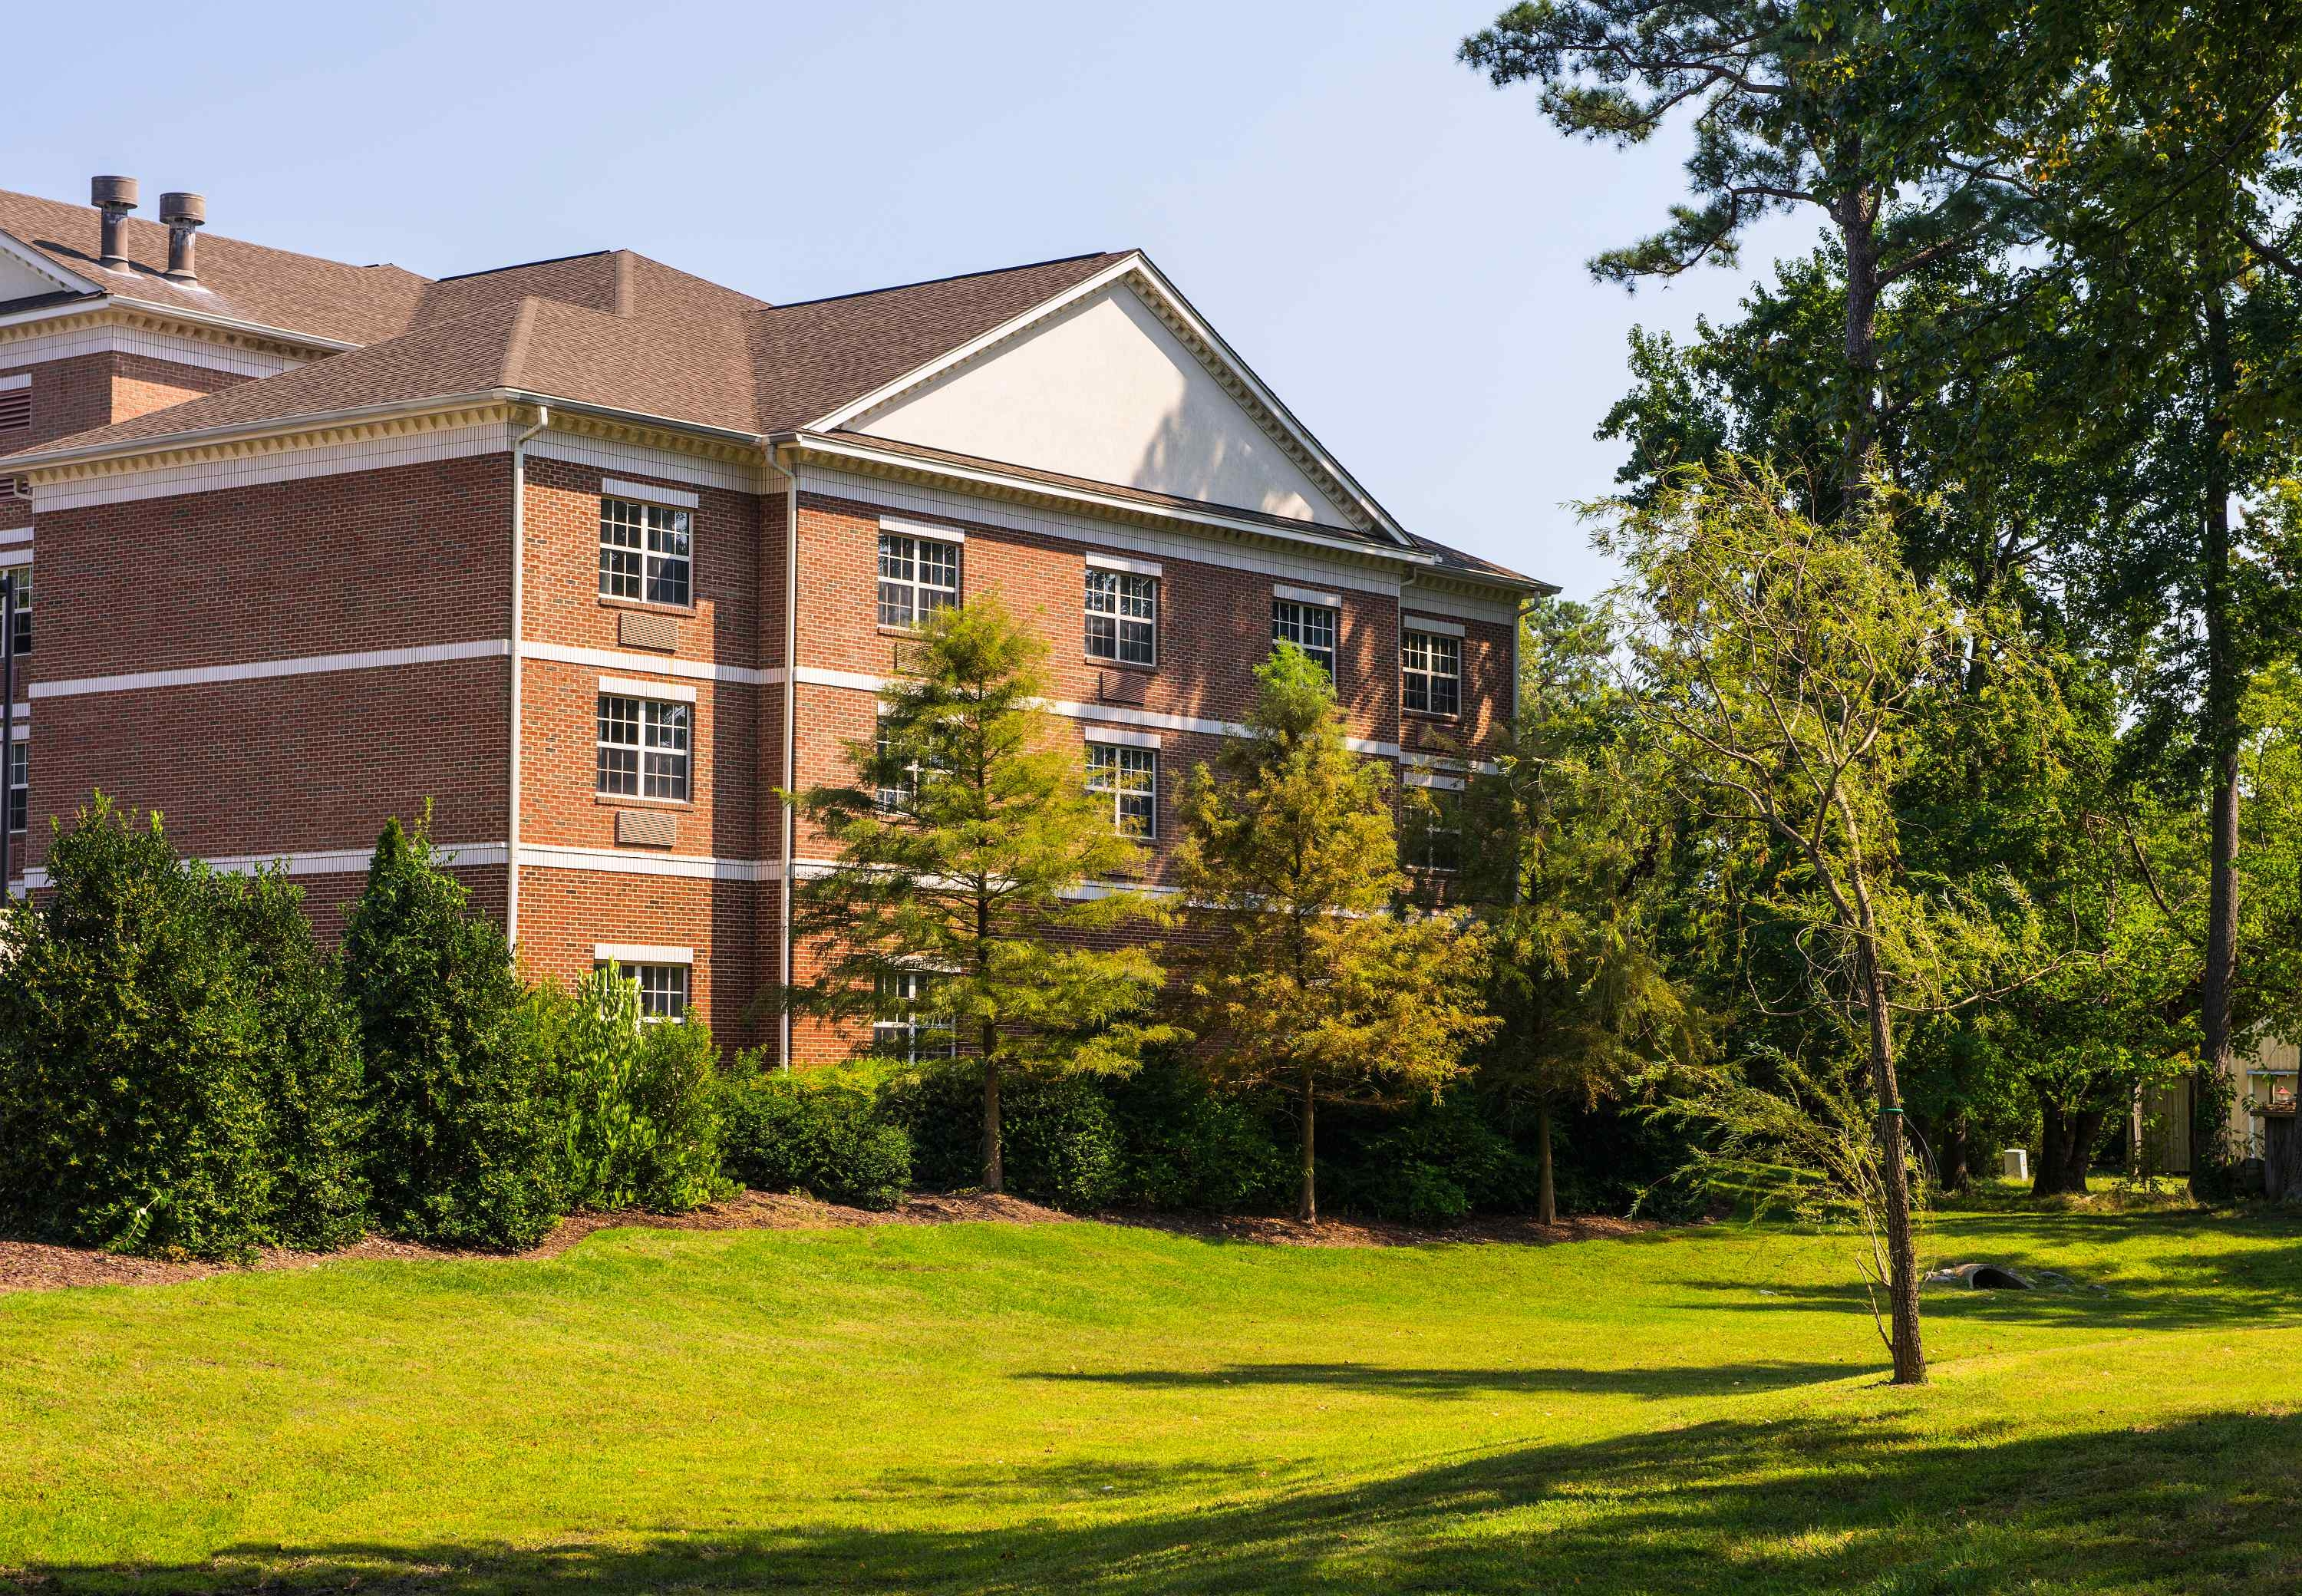 SpringHill Suites by Marriott Williamsburg image 0